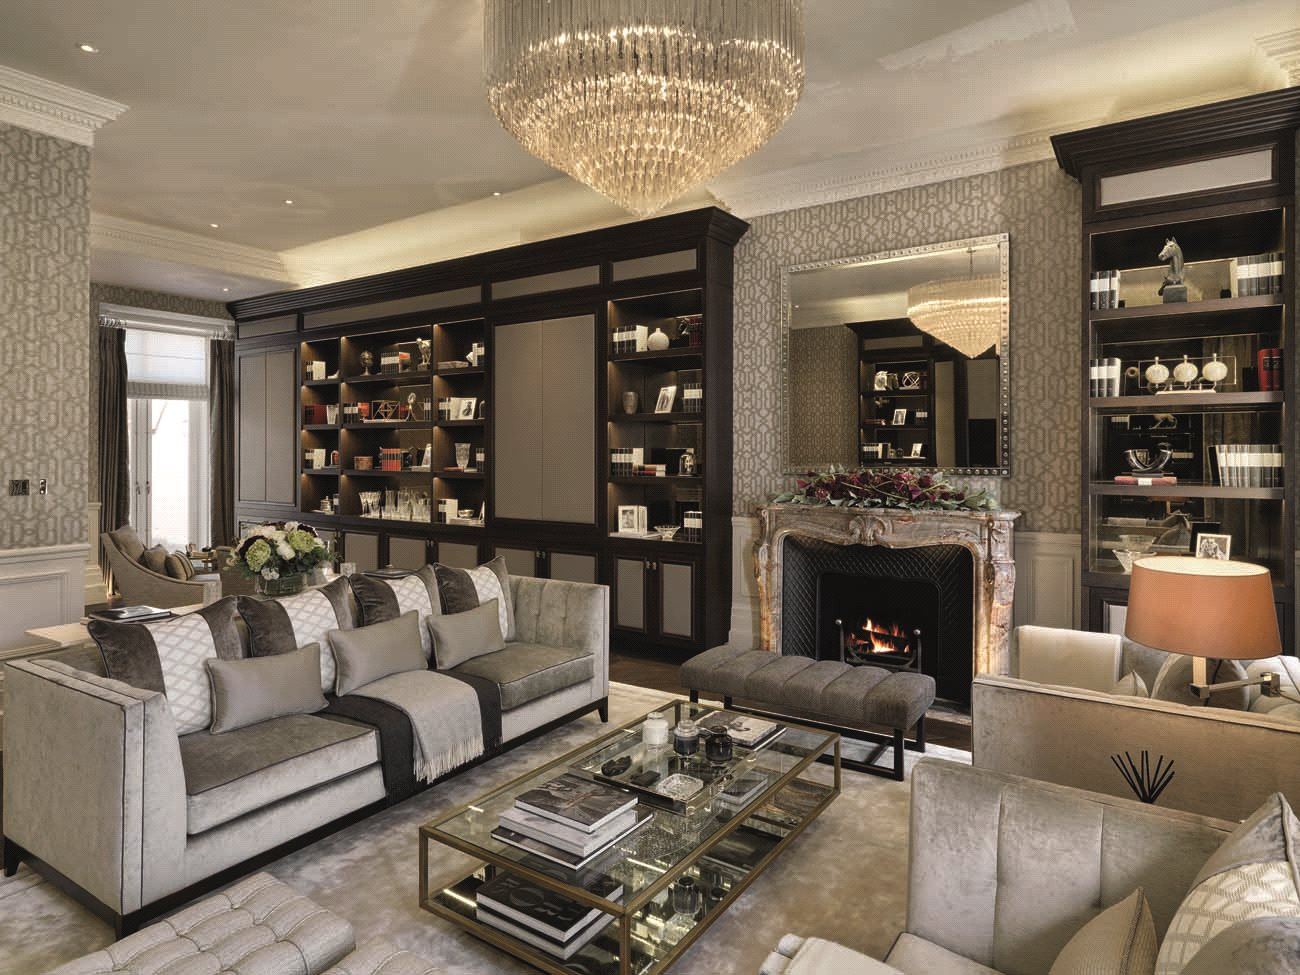 Chester square belgravia london sw1w a luxury home for for Luxury real estate in london